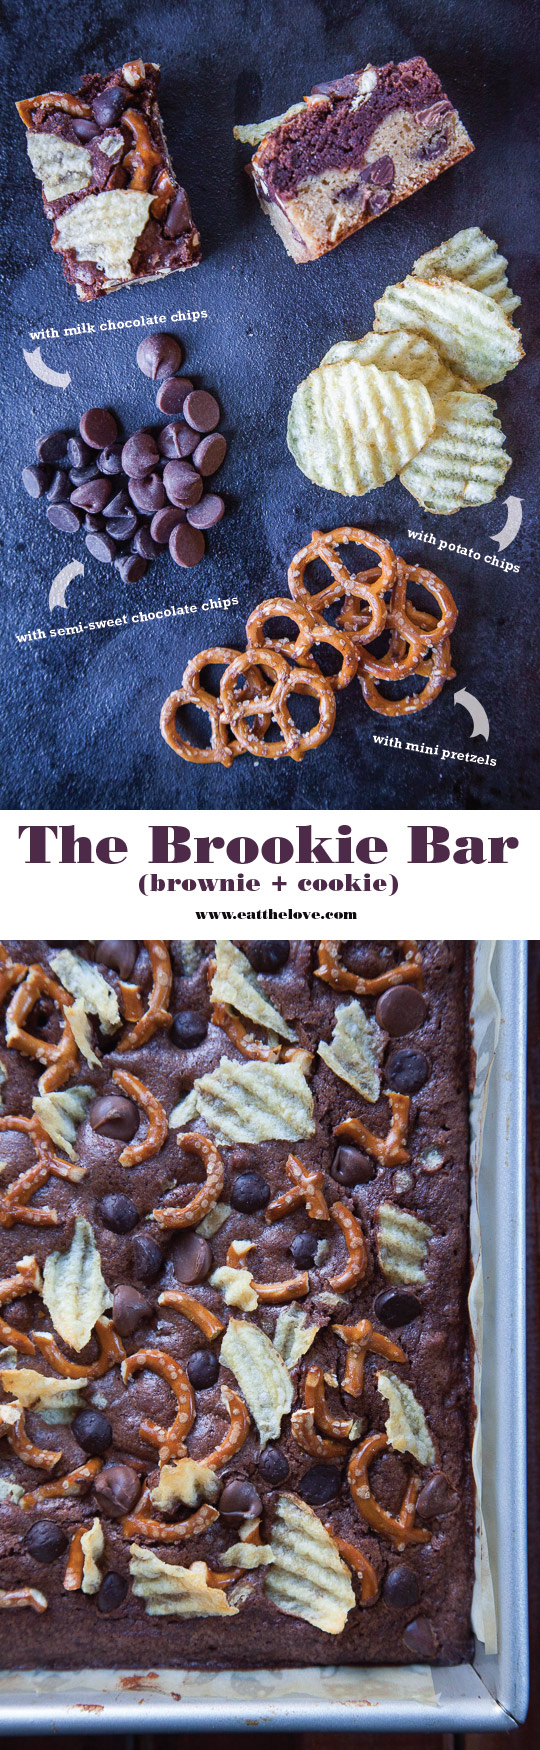 The Brookie Bar Recipe (a layered brownie and cookie bar) with potato chips, pretzels and two types of chocolate chips! Photo and recipe by Irvin Lin of Eat the Love.